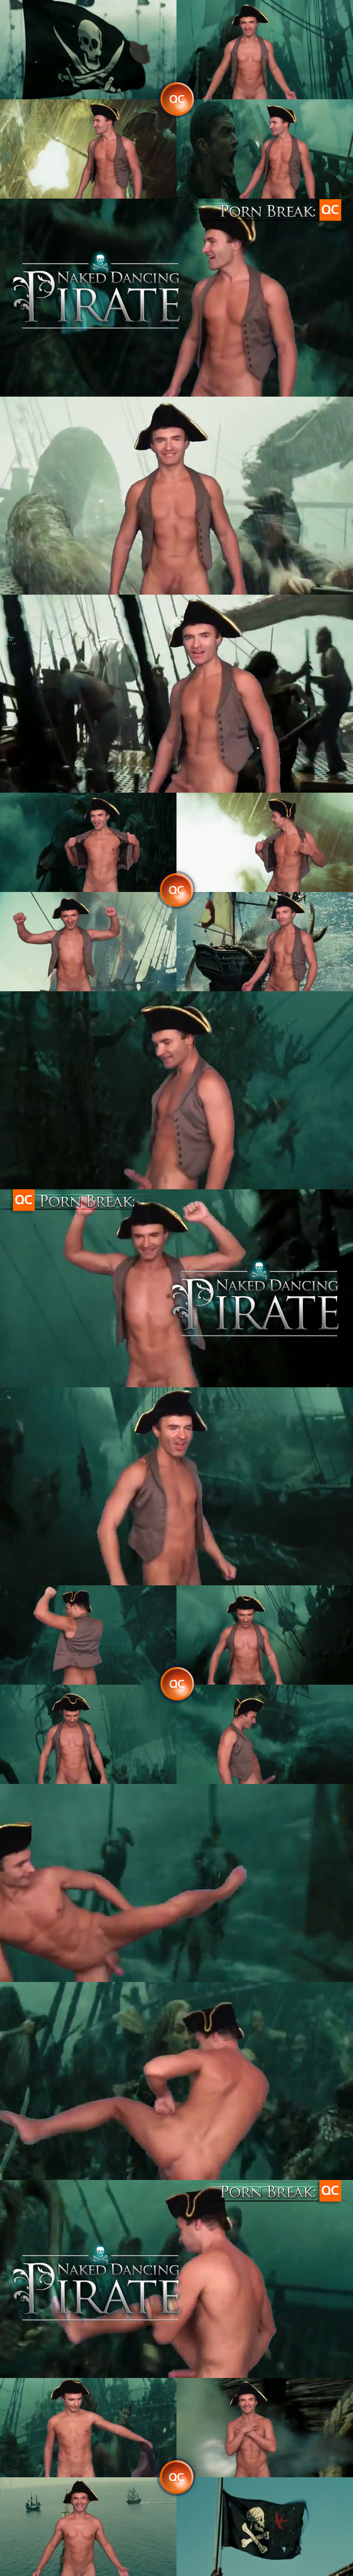 Porn: Naked Dancing Pirate!